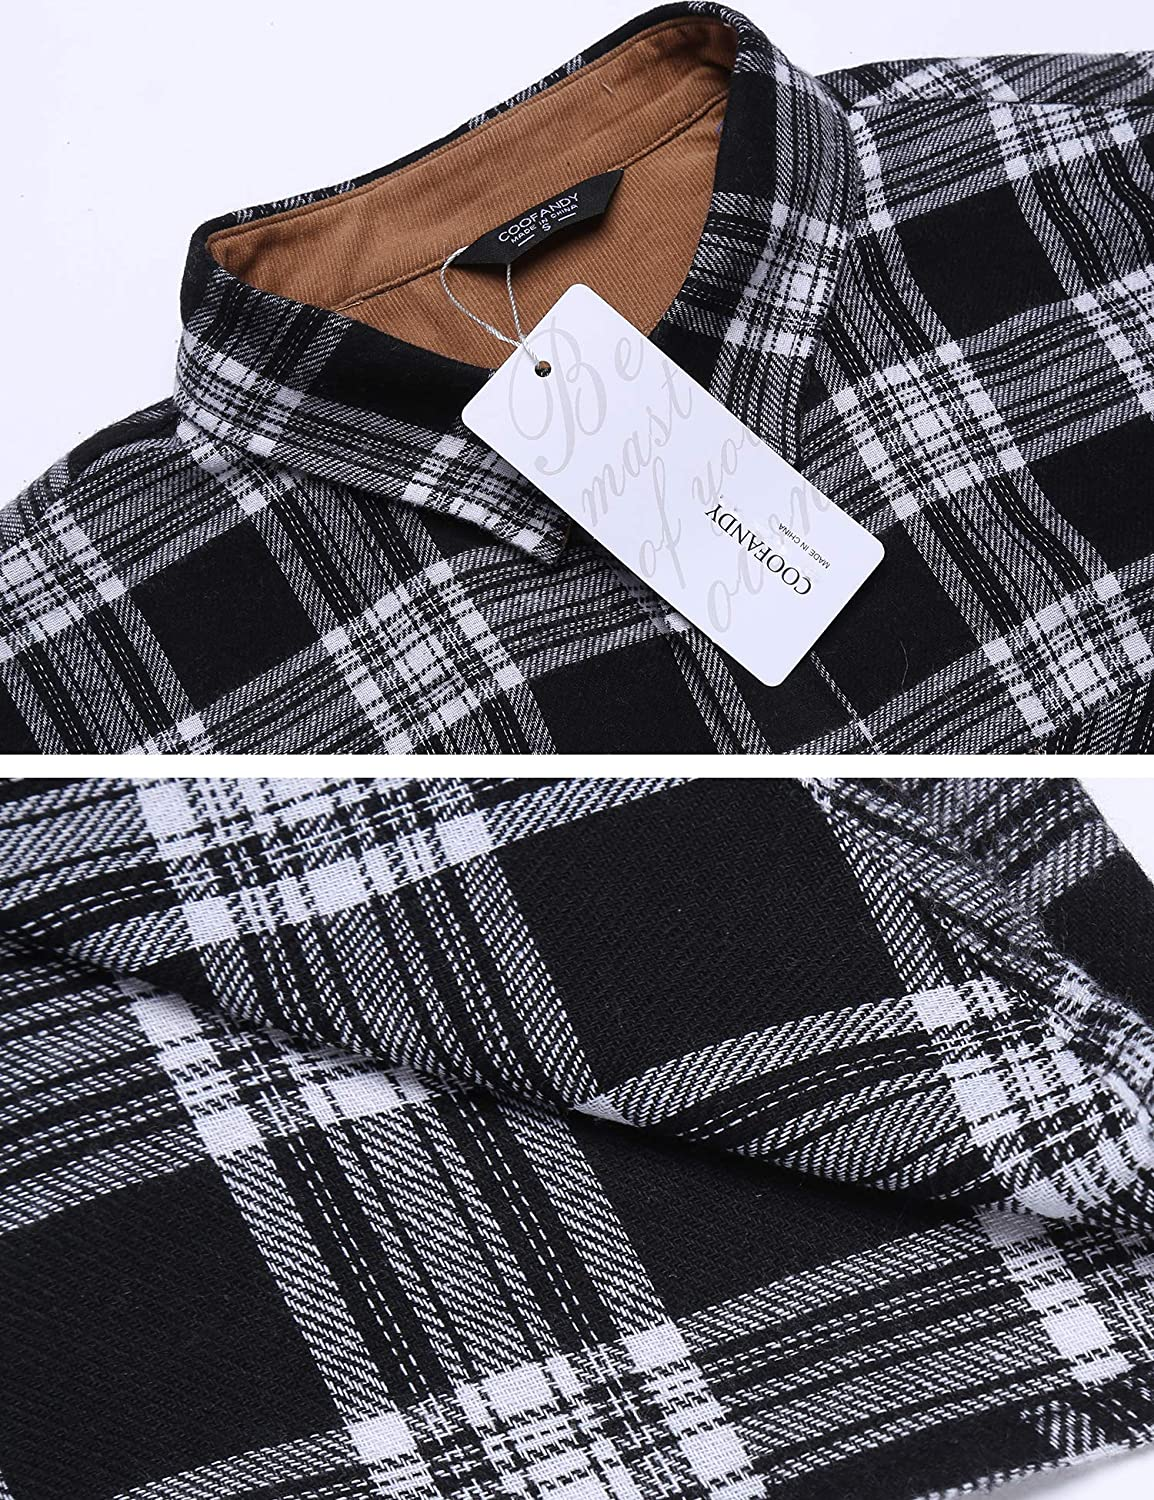 COOFANDY Men/'s Button Up Flannel Shirt Long Sleeve Regular Fit Western Shirts Plaid Casual Outfit